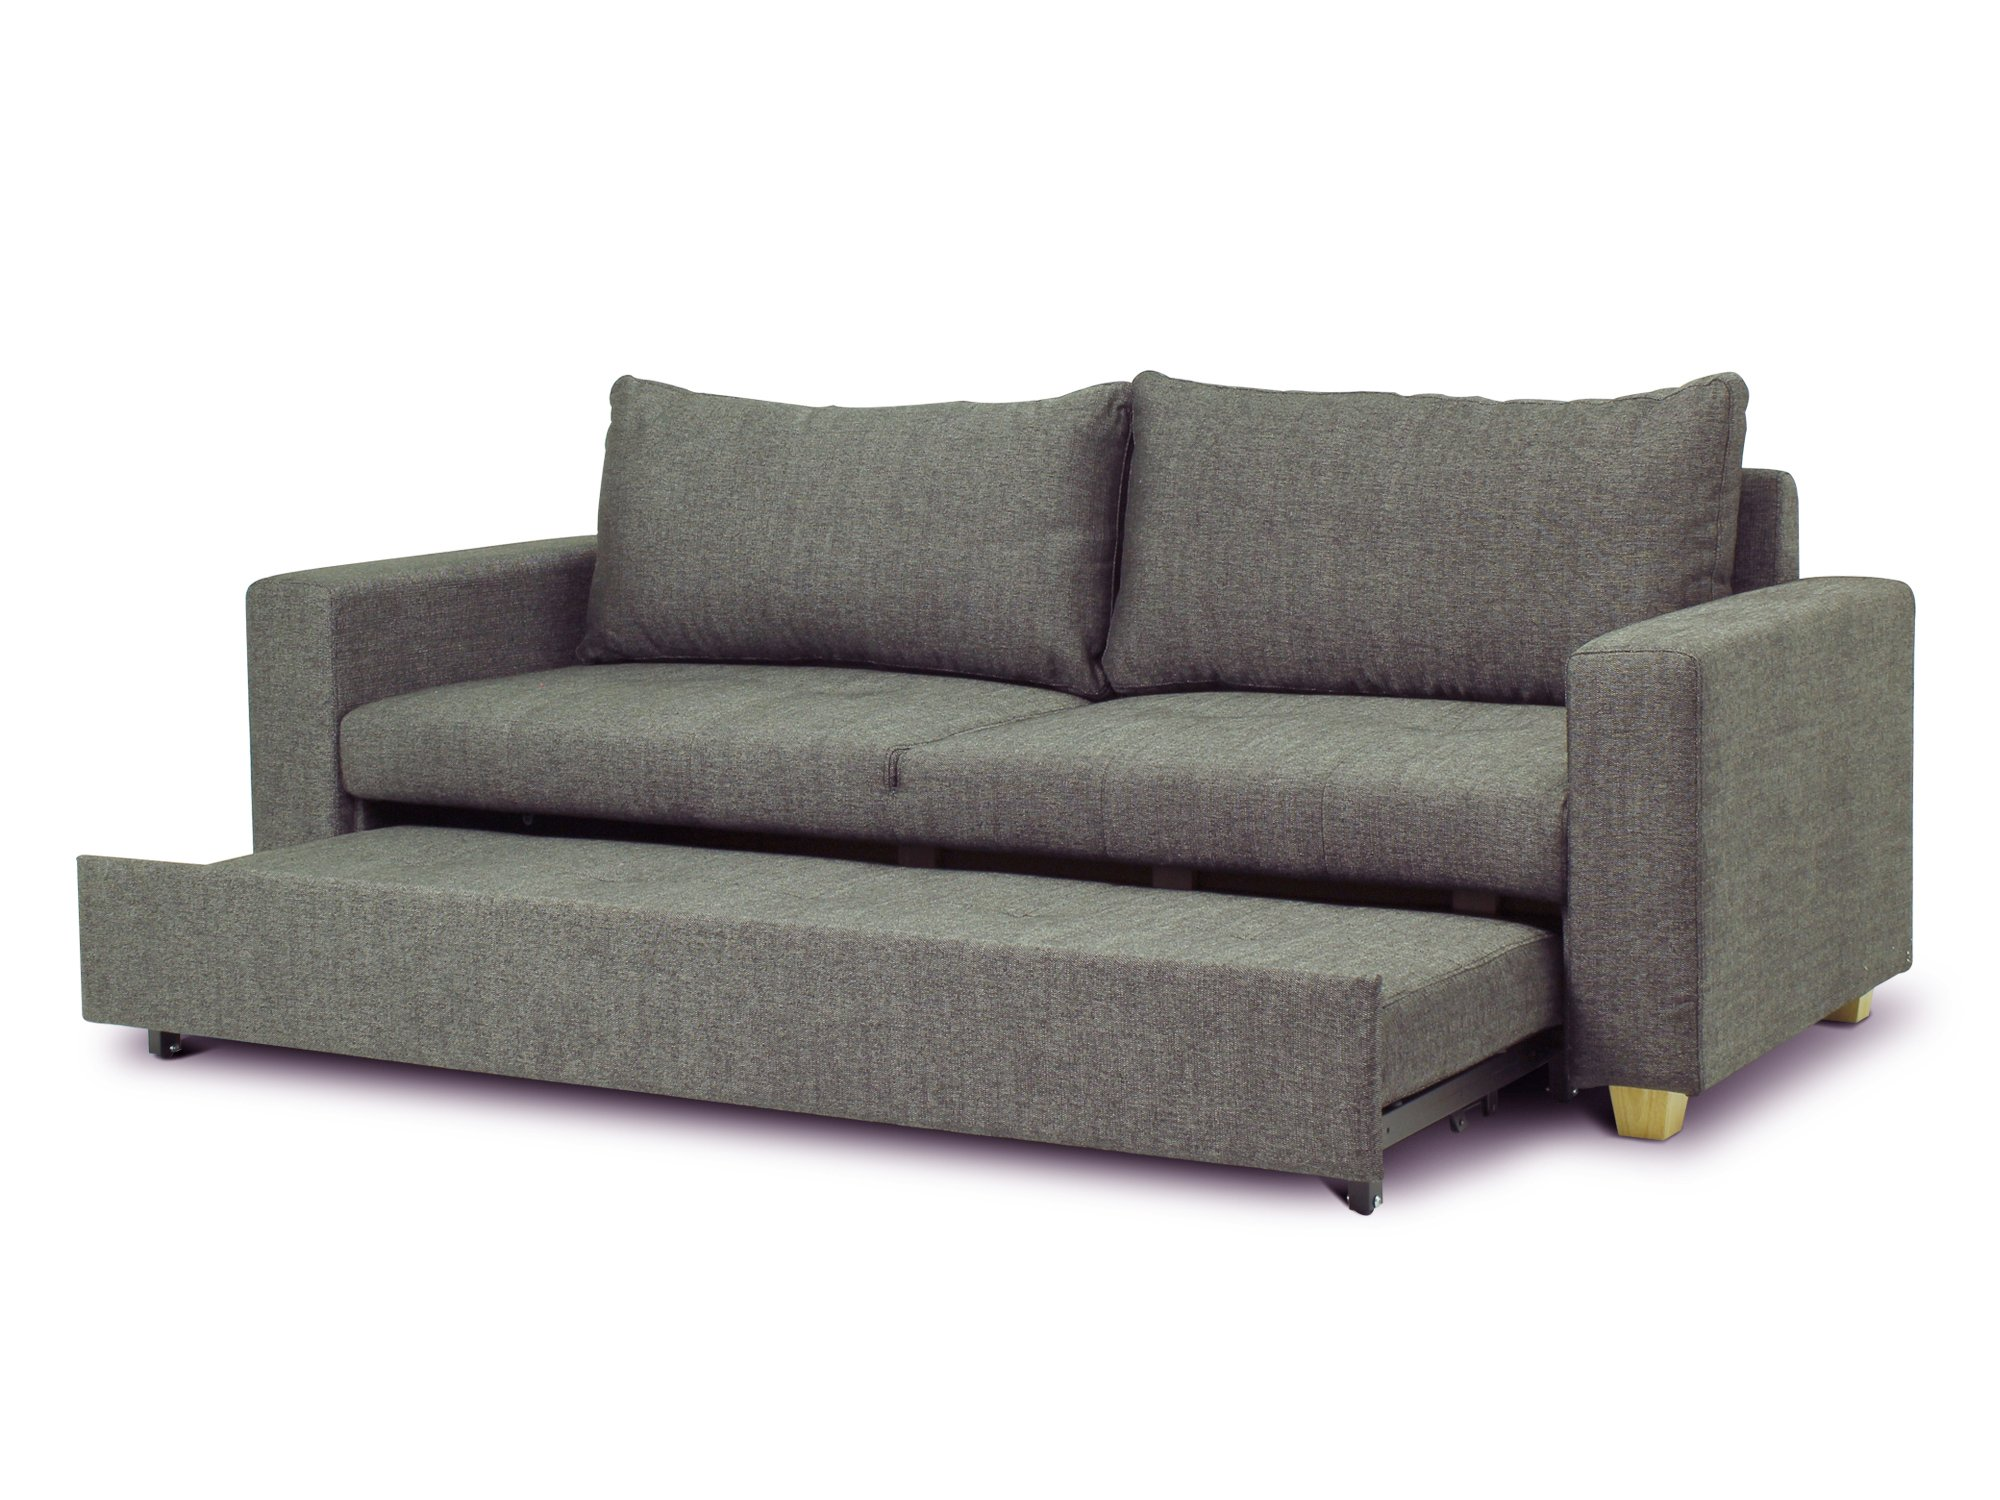 3 seater sofa beds sofa sleeper chicago chicago black fabric 3 seater sofa bed with wood legs, EXLAYYB